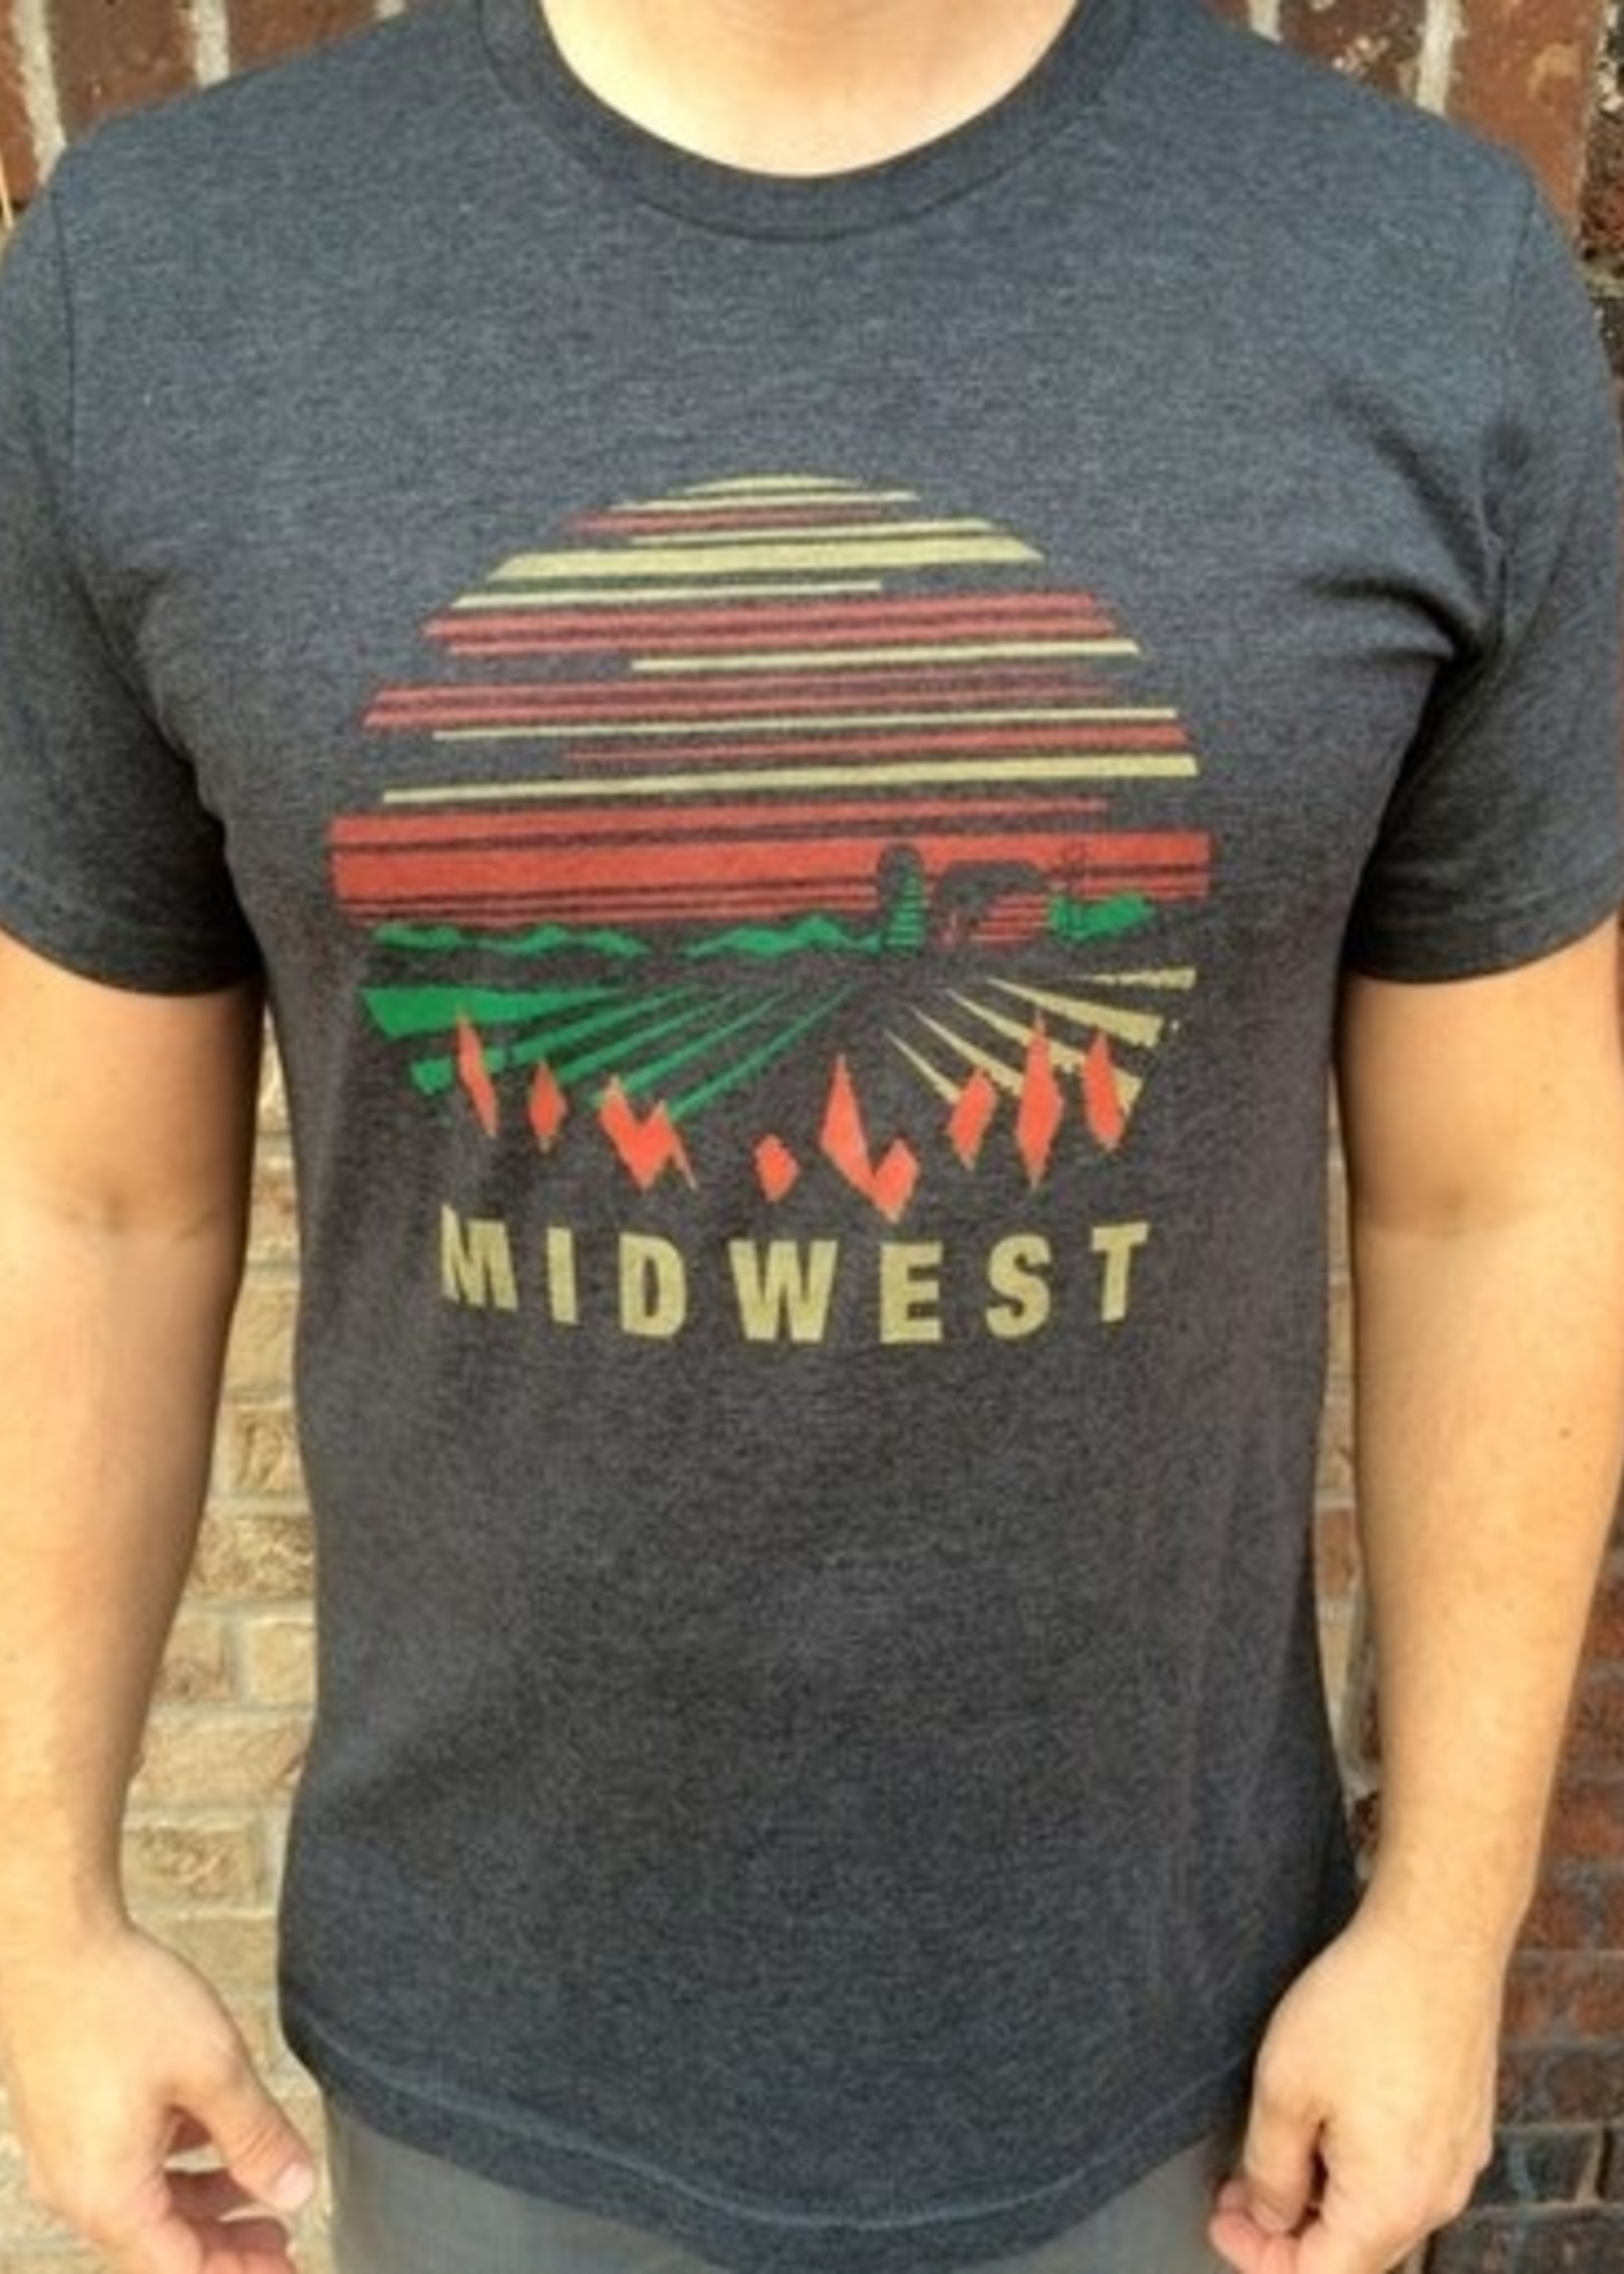 Midwest Adult T-Shirt